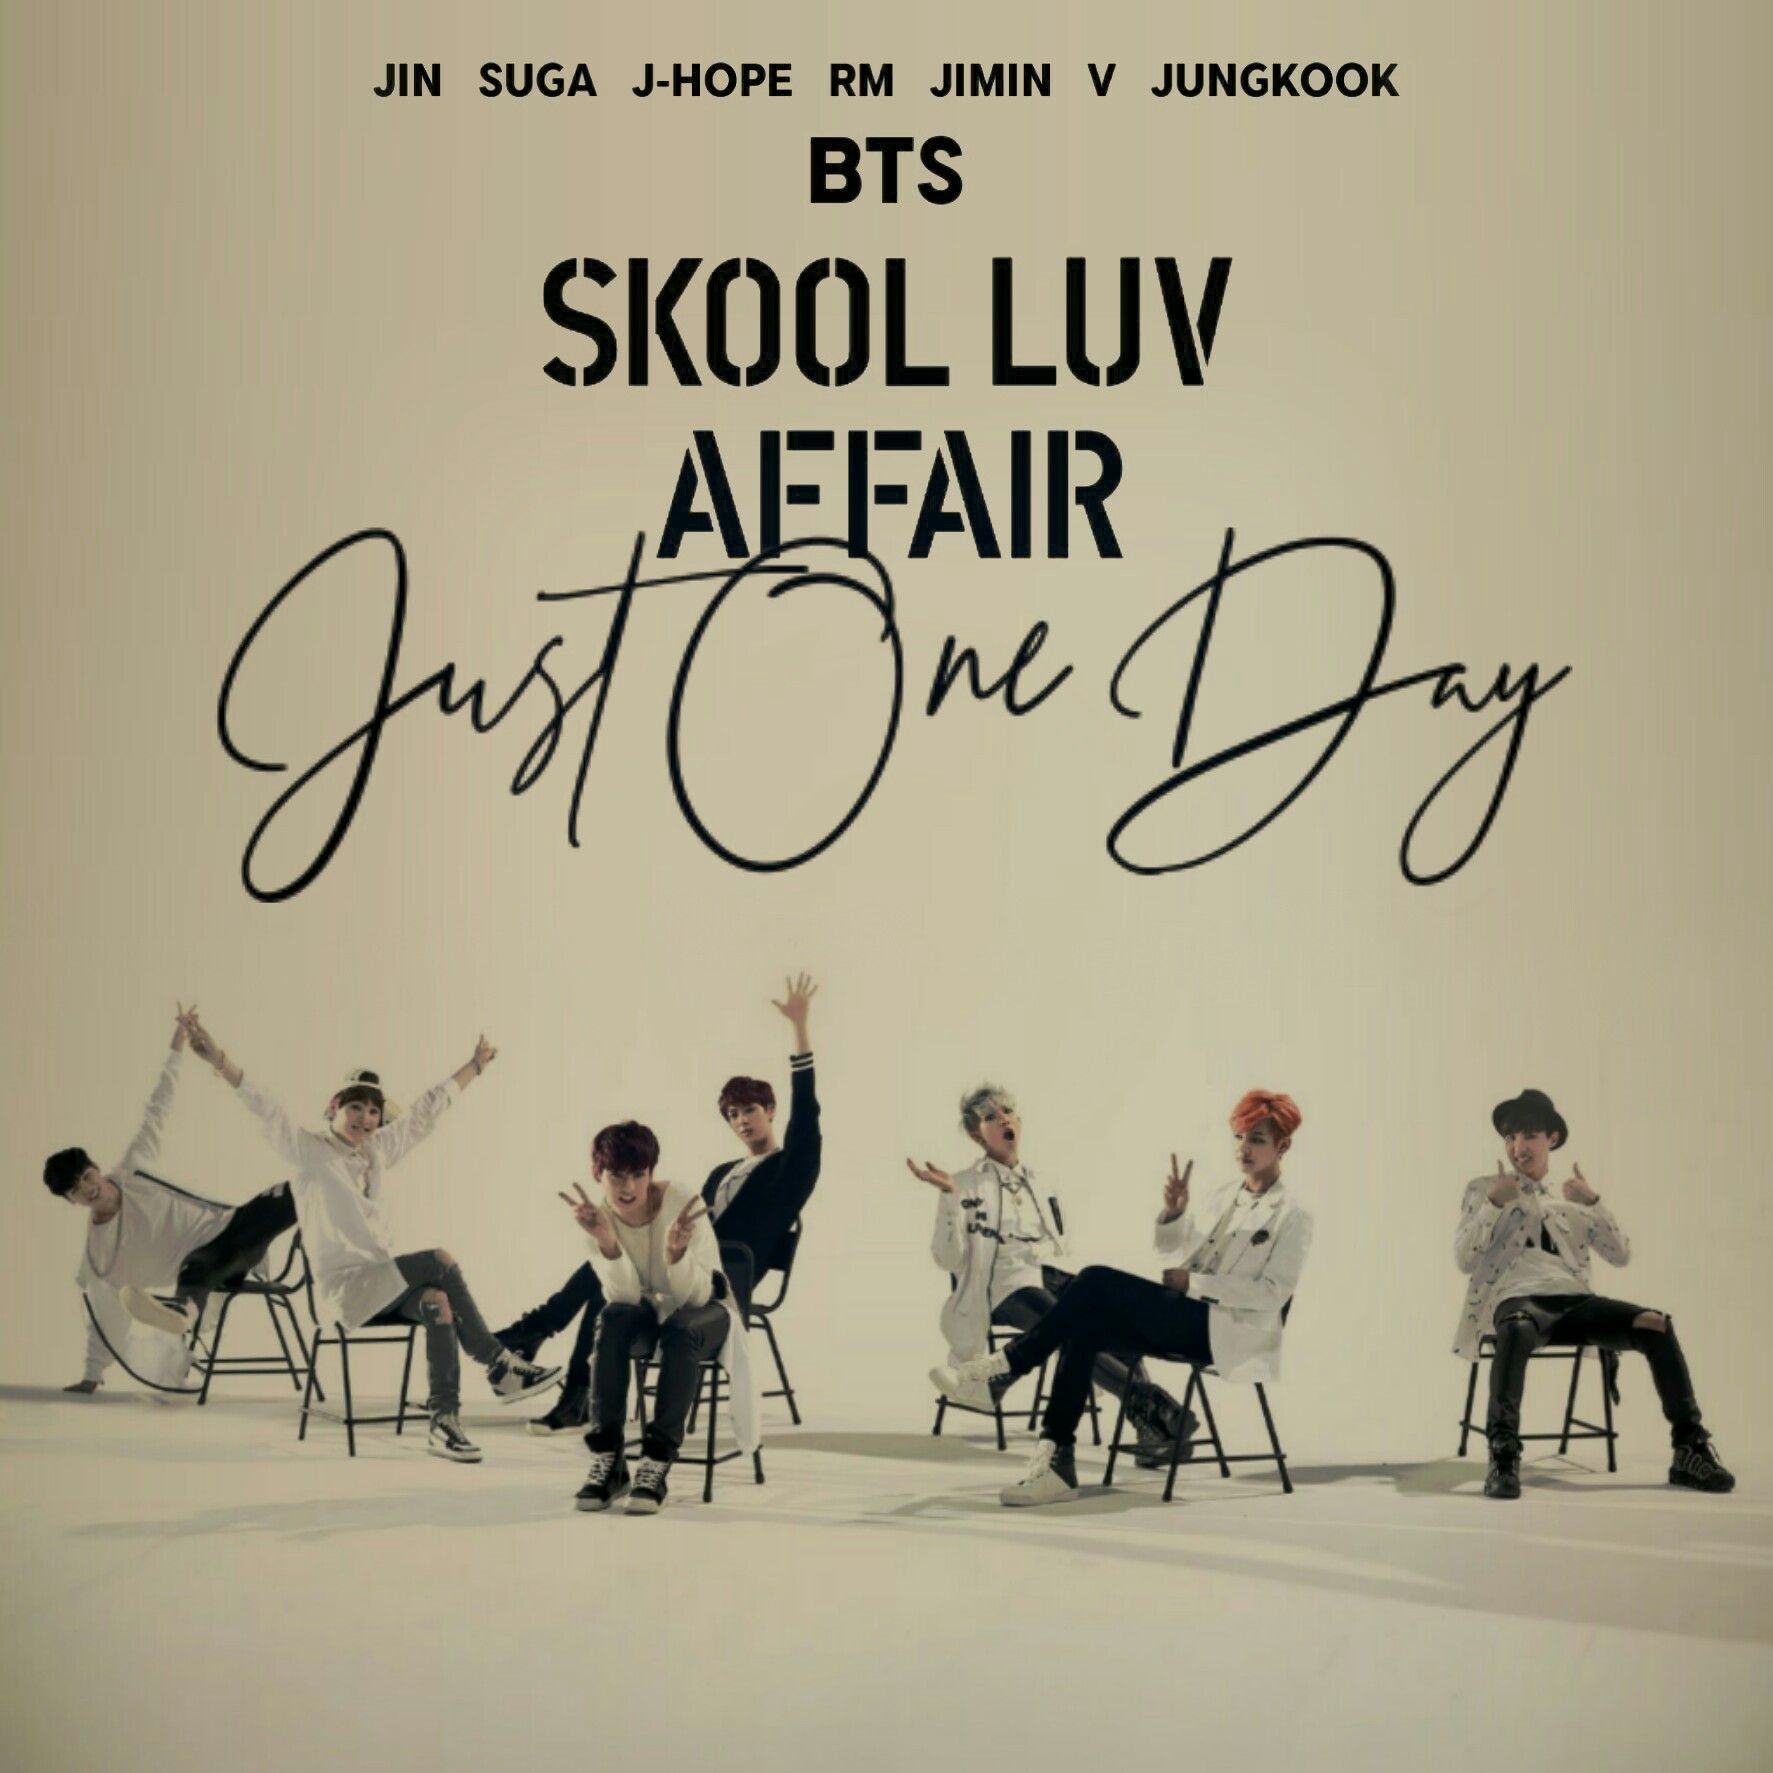 Bts Just One Day Skool Luv Affair Album Cover By Lealbum Bts